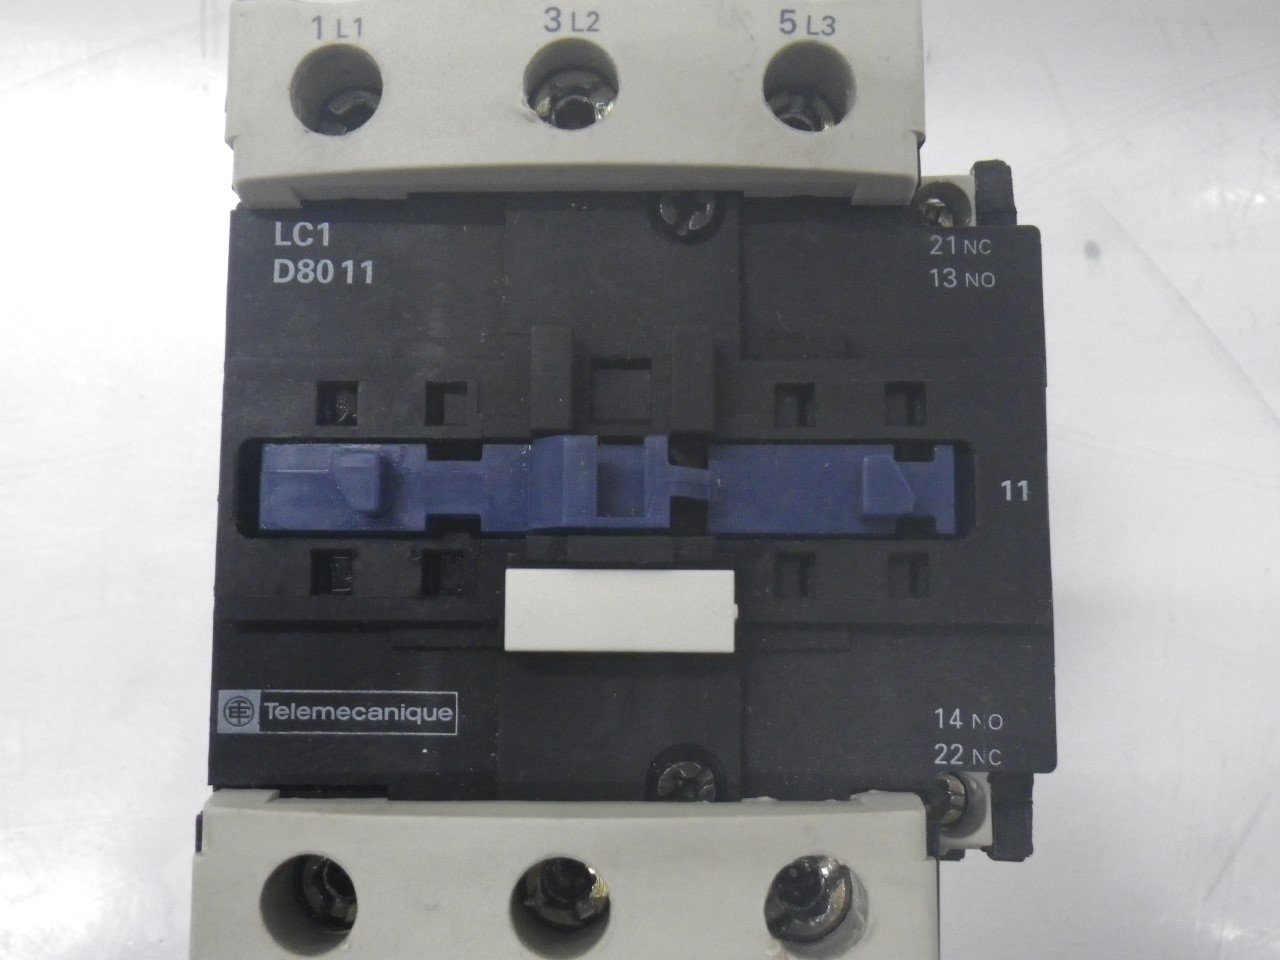 IMGP8343125A, 600V (12)LC1D8011 Telemecanique Contactor Magnetic Power Relay 125a, 600v (Used Tested)